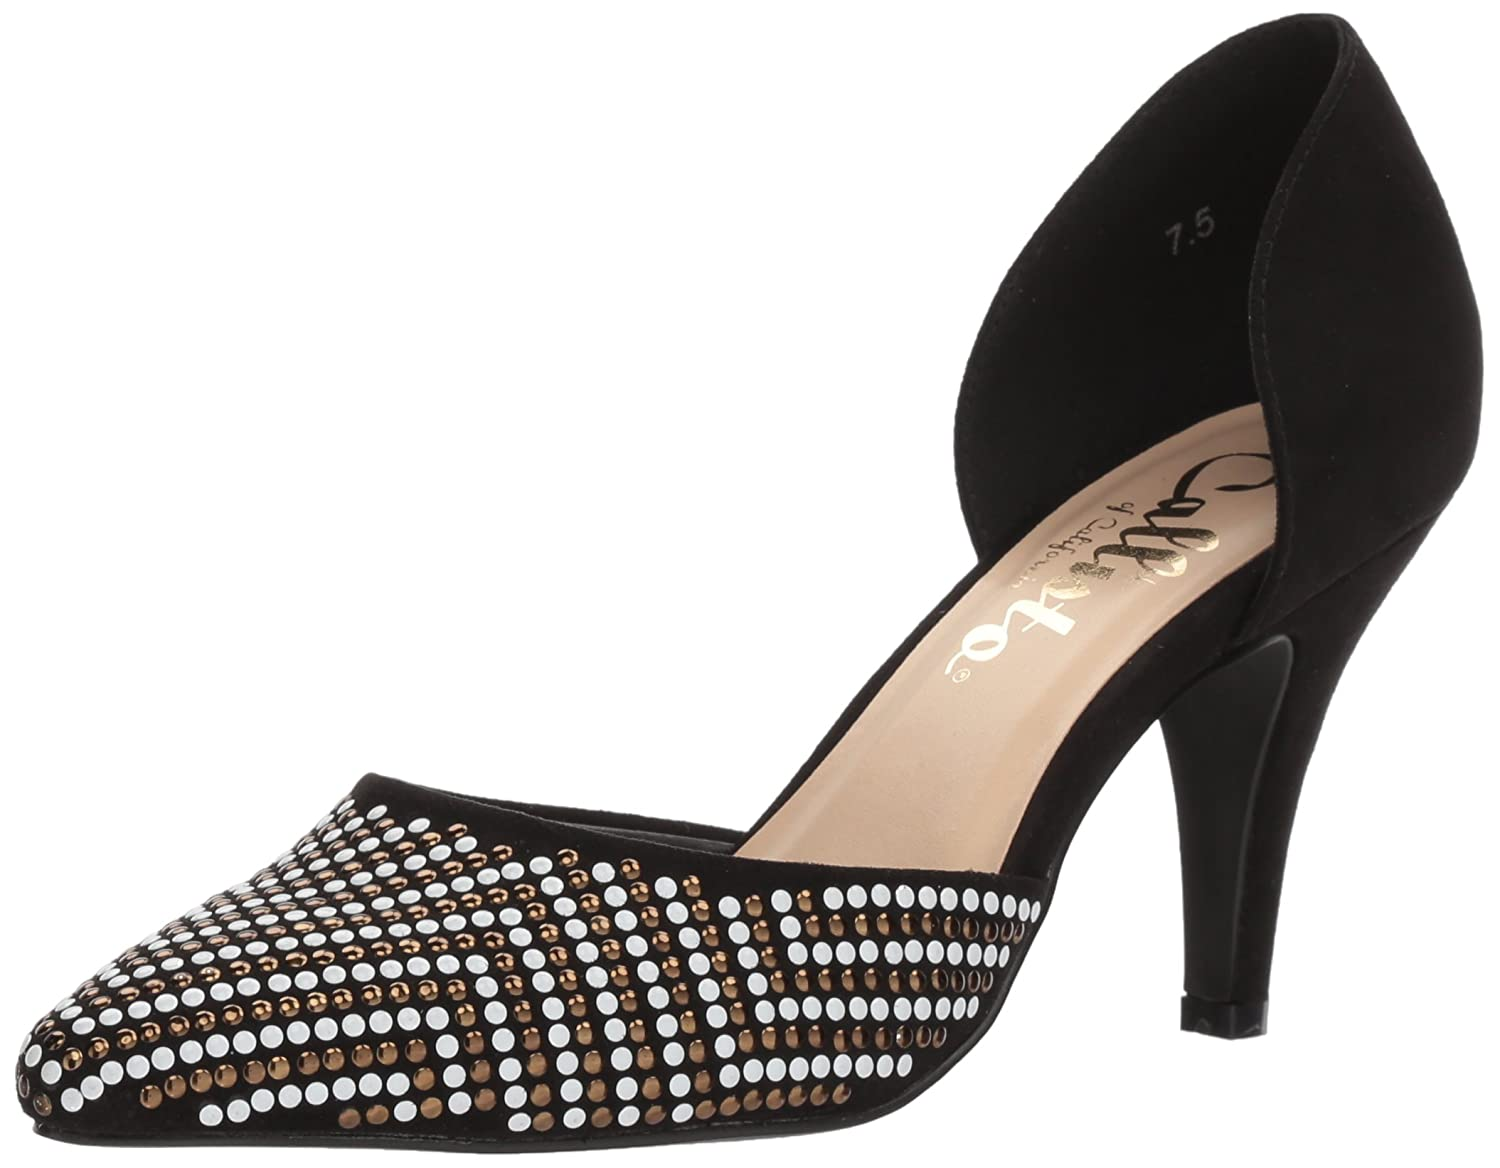 Callisto Women's Mimosa Pump B075VJJH2T 5.5 B(M) US|Black Sd